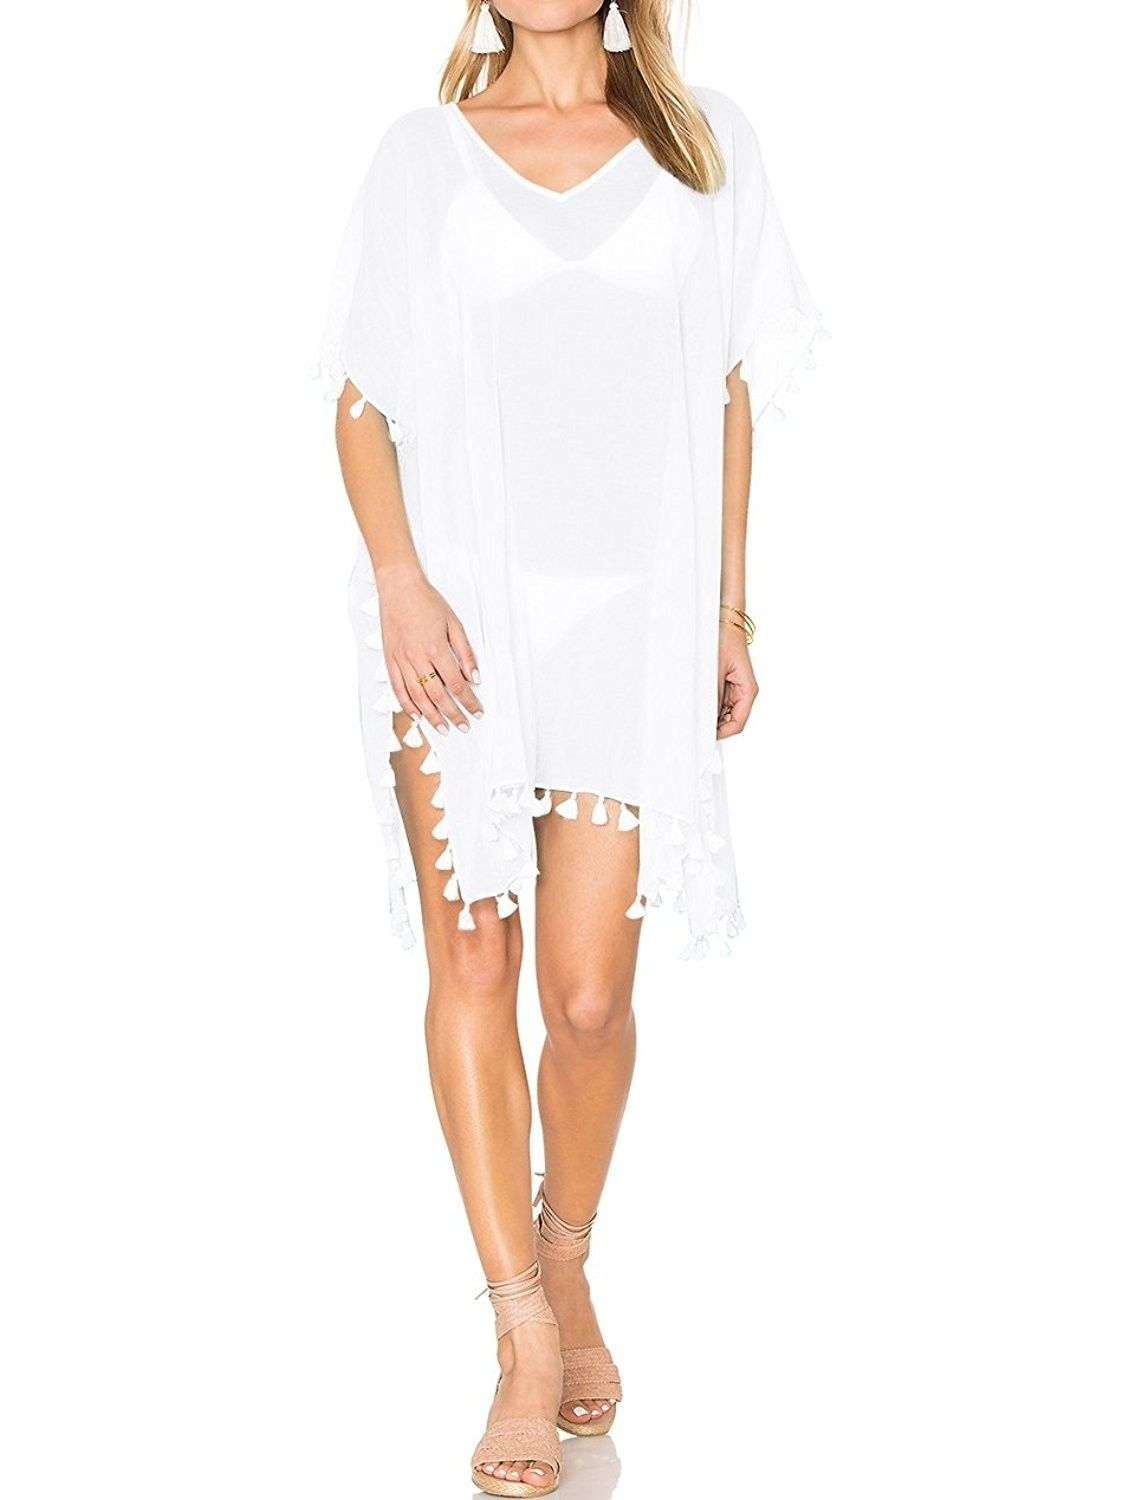 5091d1866142e Women's Clothing, Swimsuits & Cover Ups, Cover-Ups, Women Beach Cover Up  One Piece Swimwear Beach Dress - Tassel White 1 - CA185CRTIW5 #fashion # Swimsuits ...